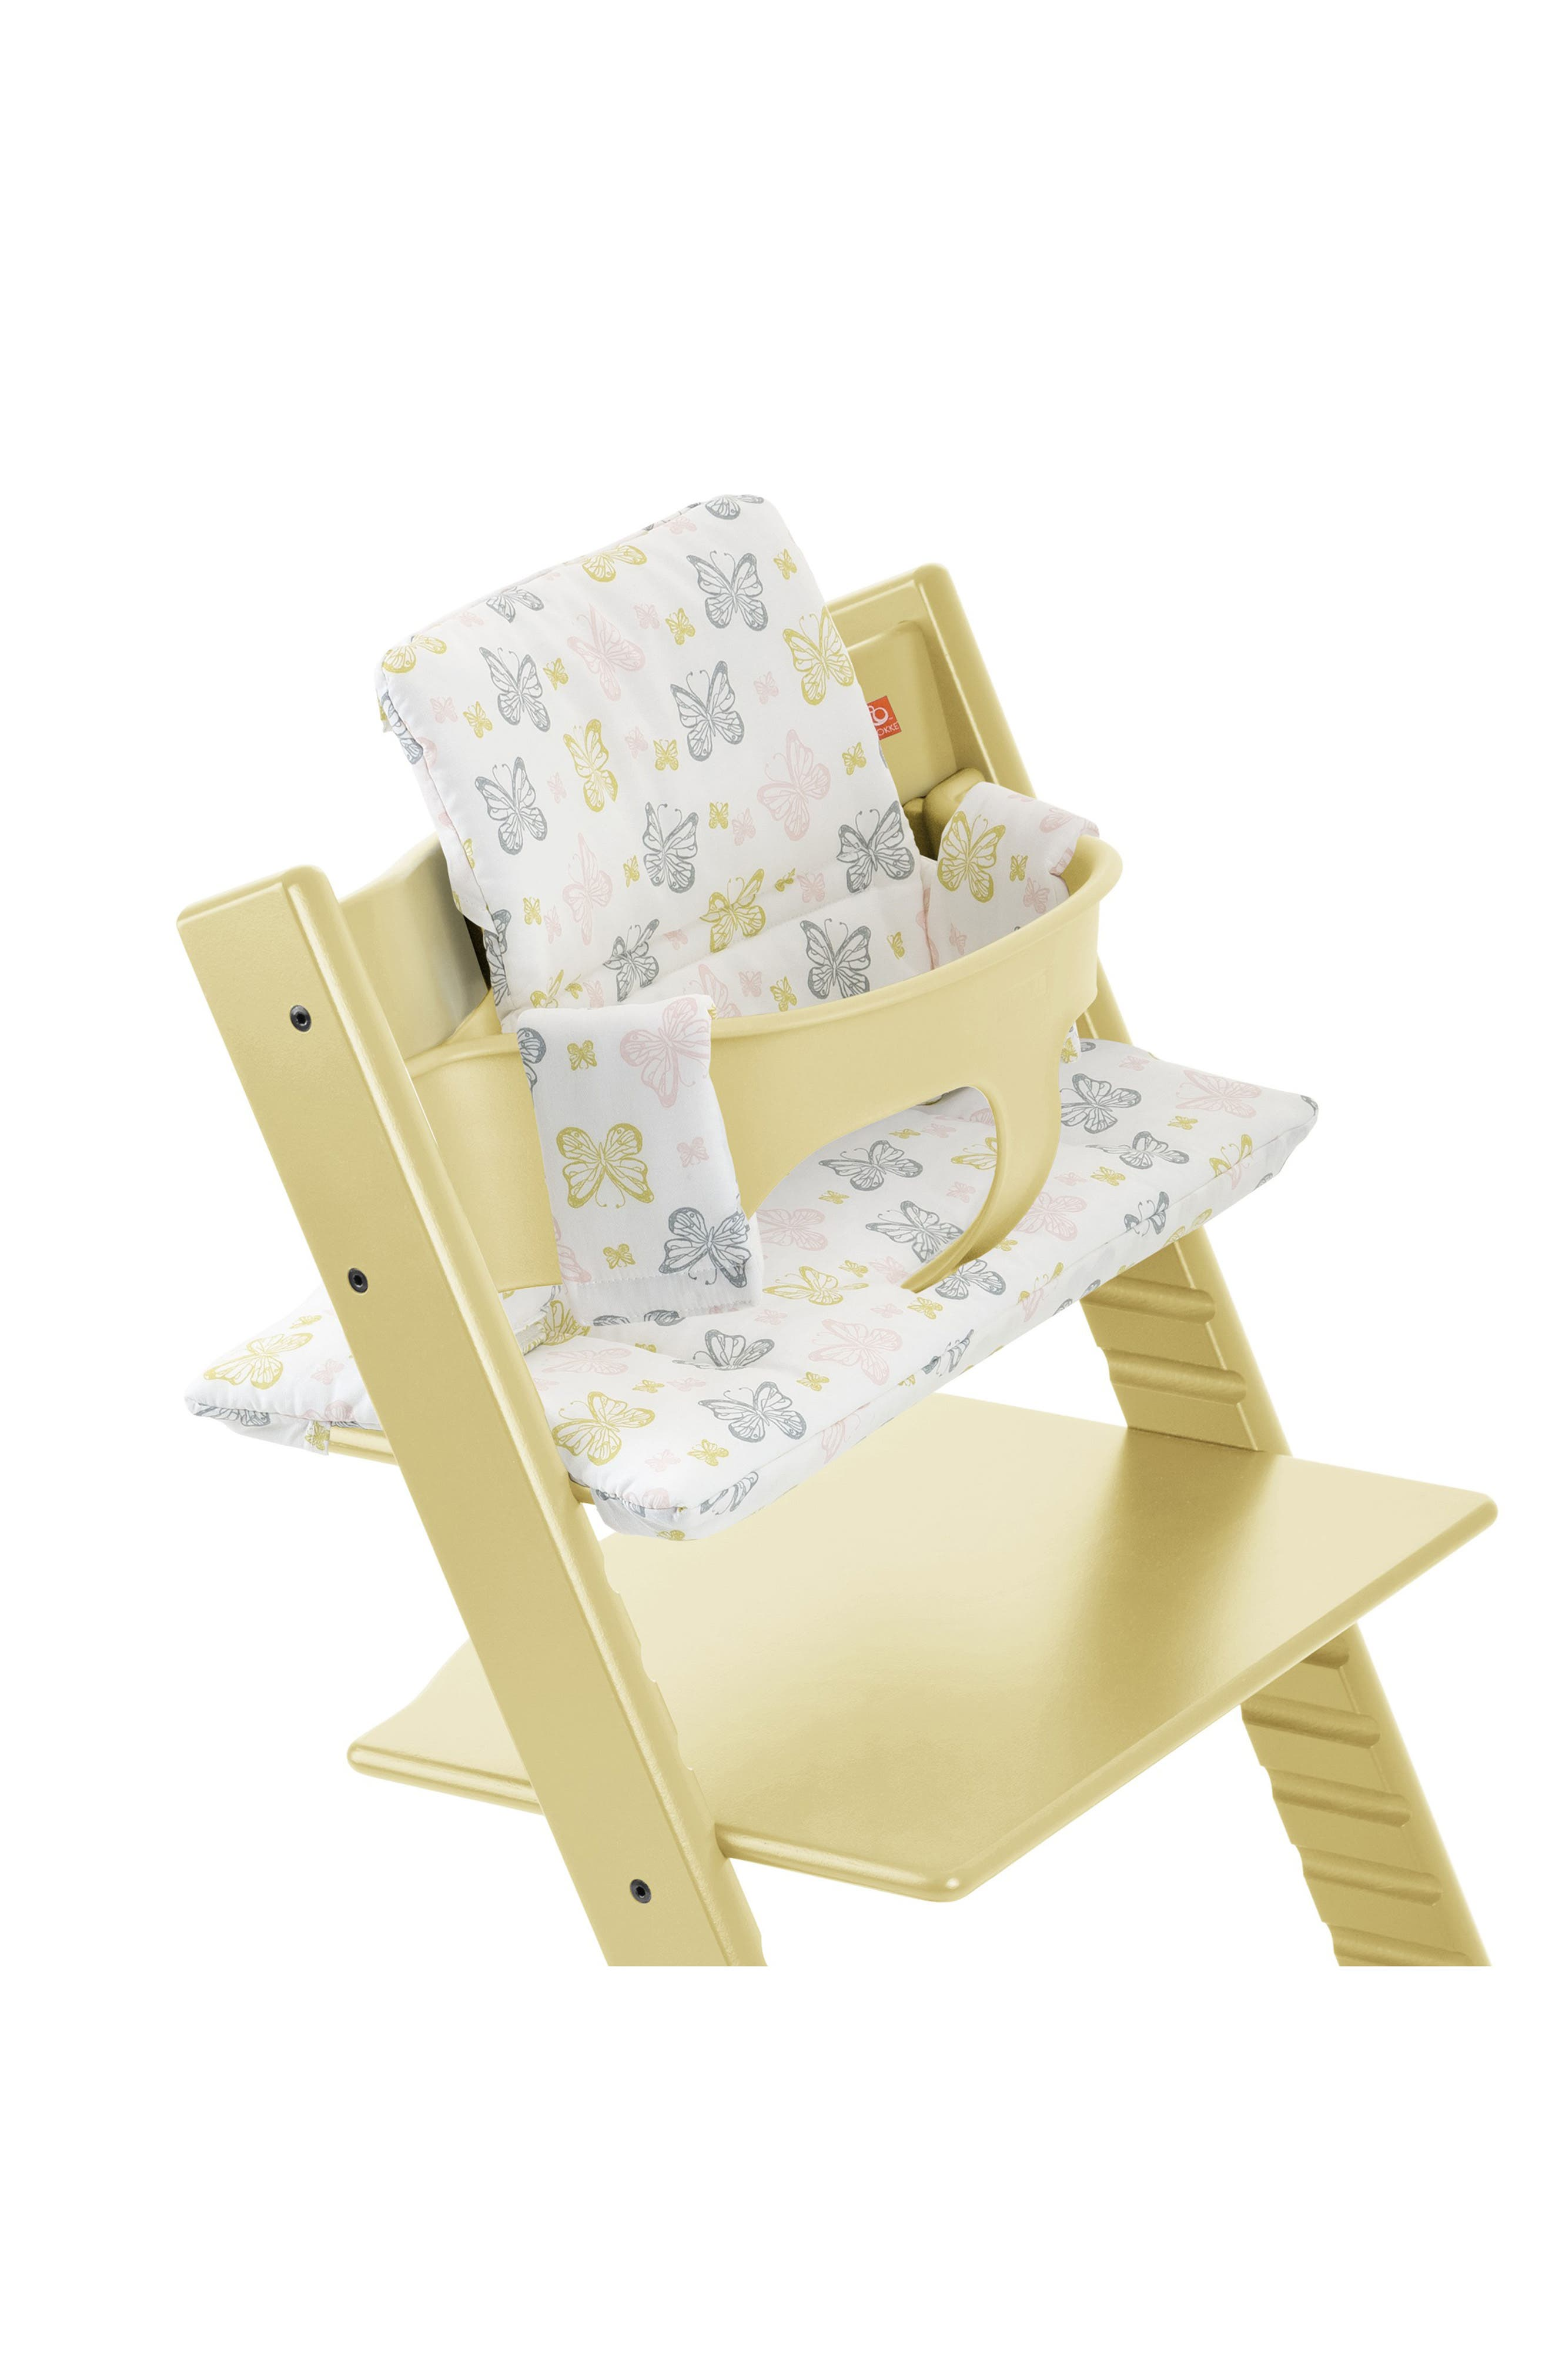 Tripp Trapp<sup>®</sup> High Chair, Baby Set, Cushion & Tray Set,                             Alternate thumbnail 2, color,                             703